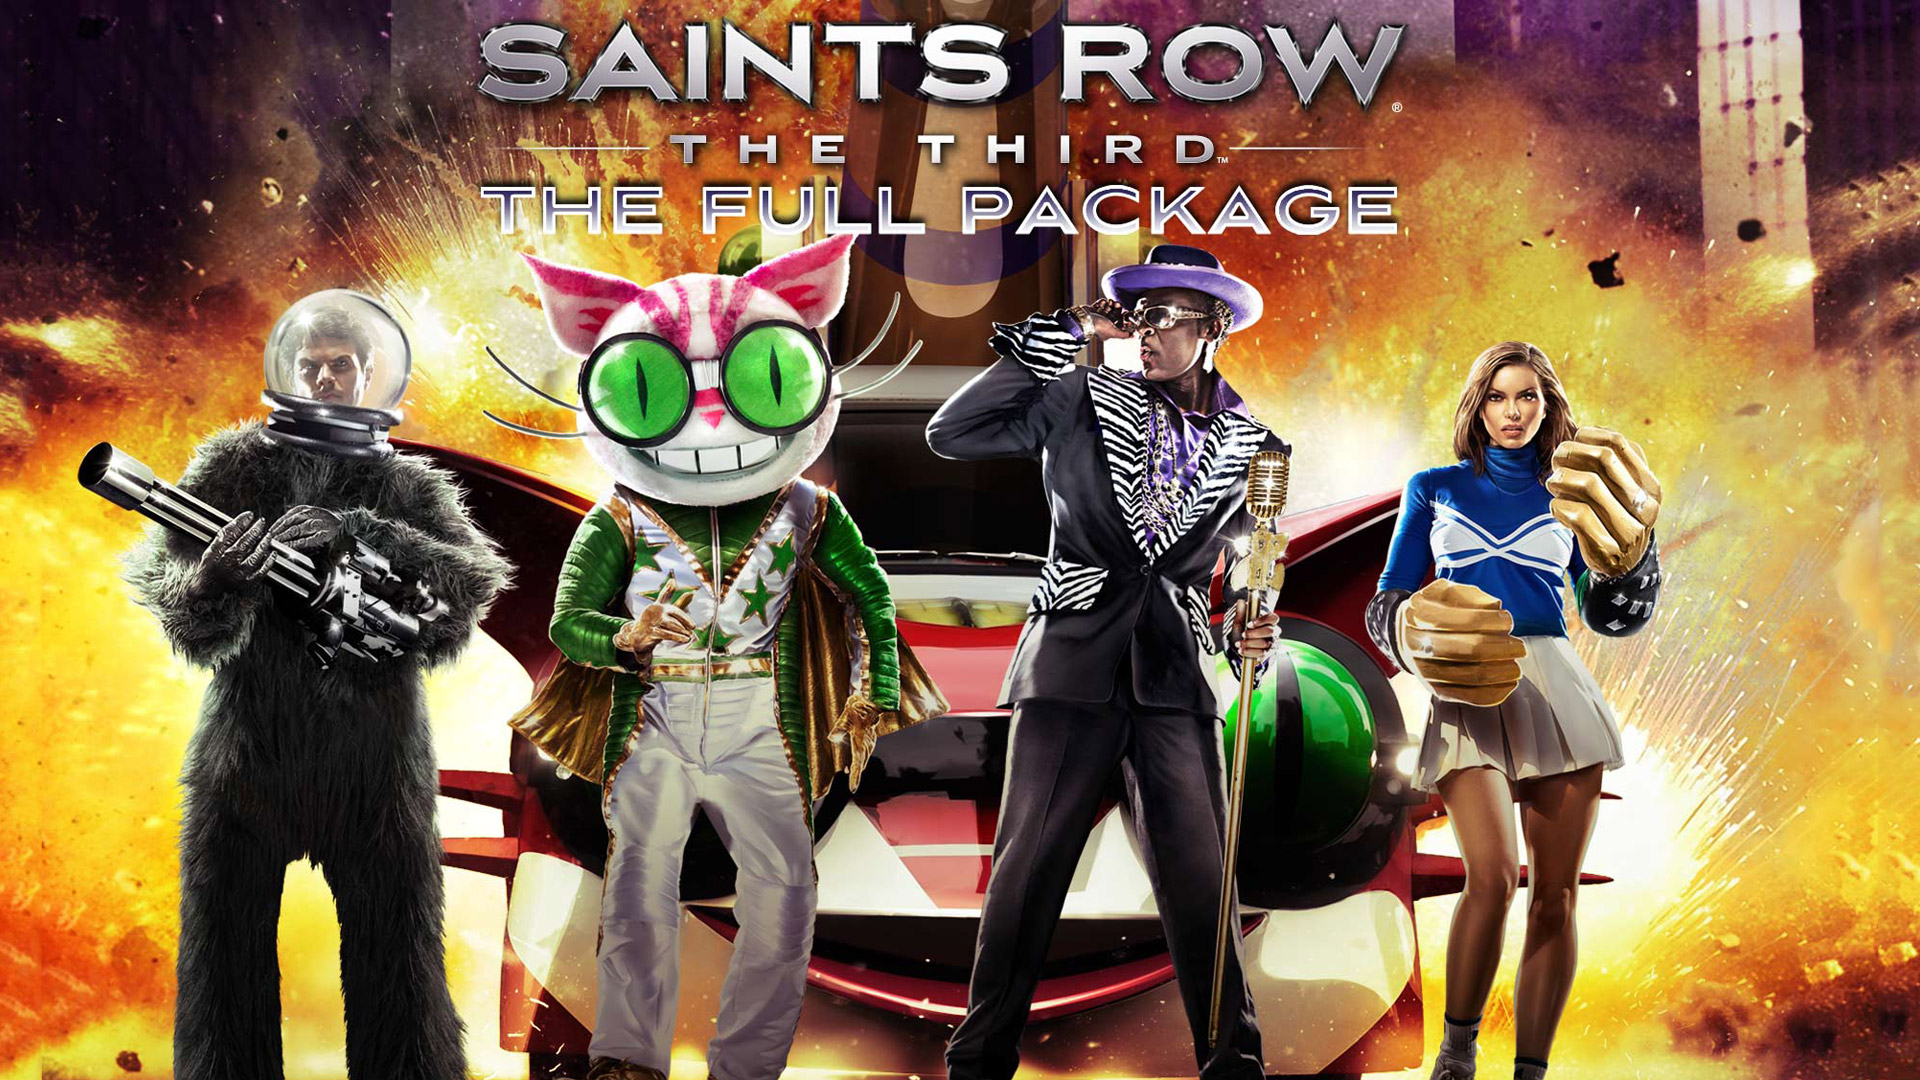 Saints Row: The Third Wallpaper in 1920x1080